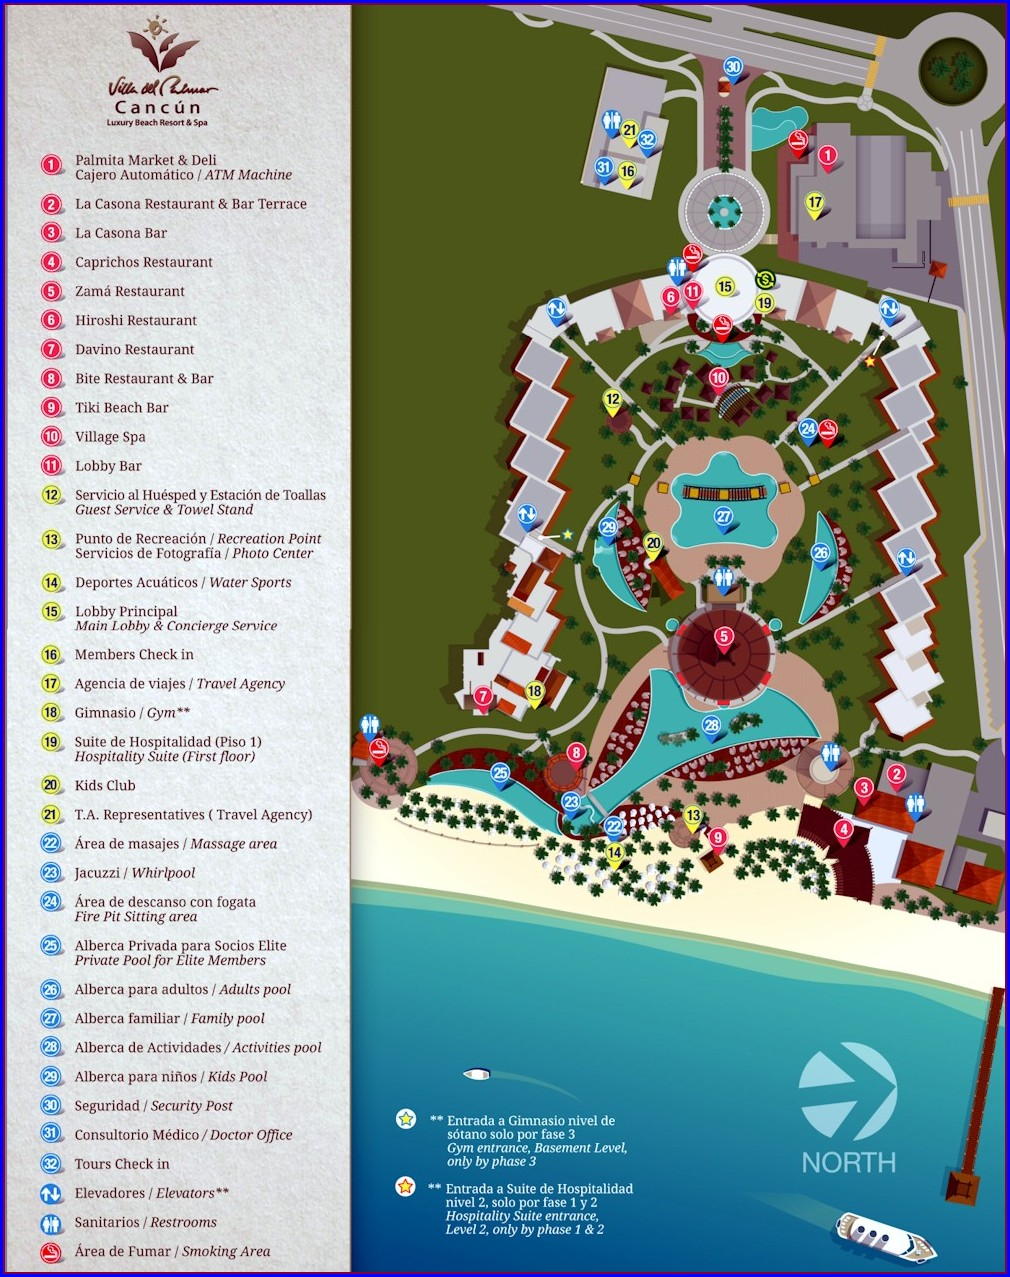 Villa Del Palmar Cancun Resort Map